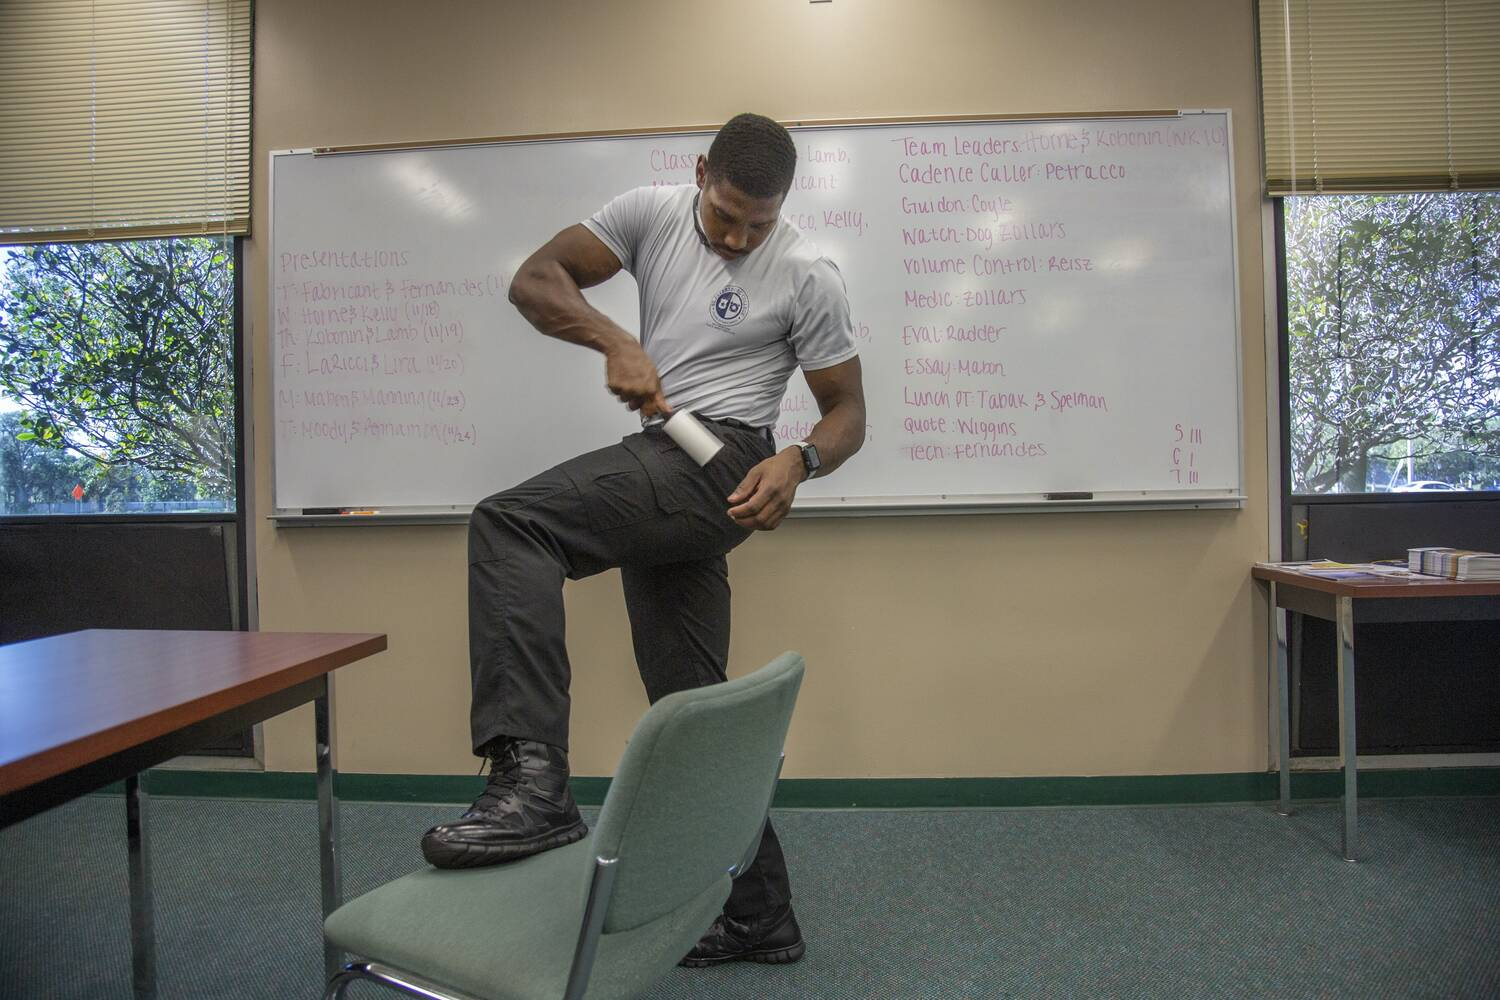 One of the recruits uses a lint roller on his slacks.